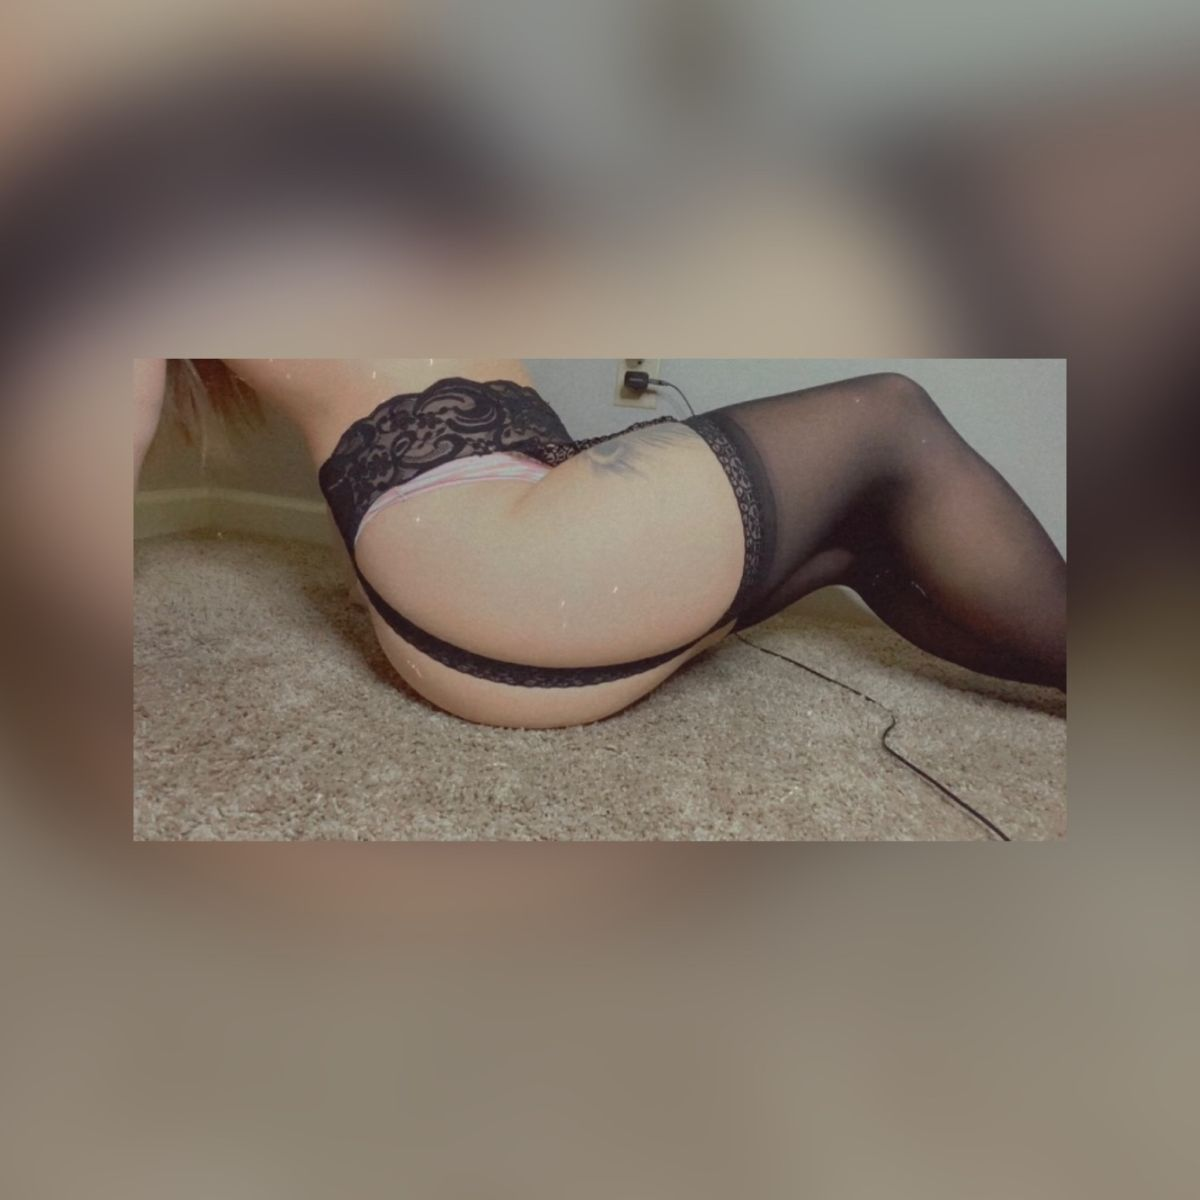 19 y/o SLUT  sale OnlyFans Leaked Photos and Videos